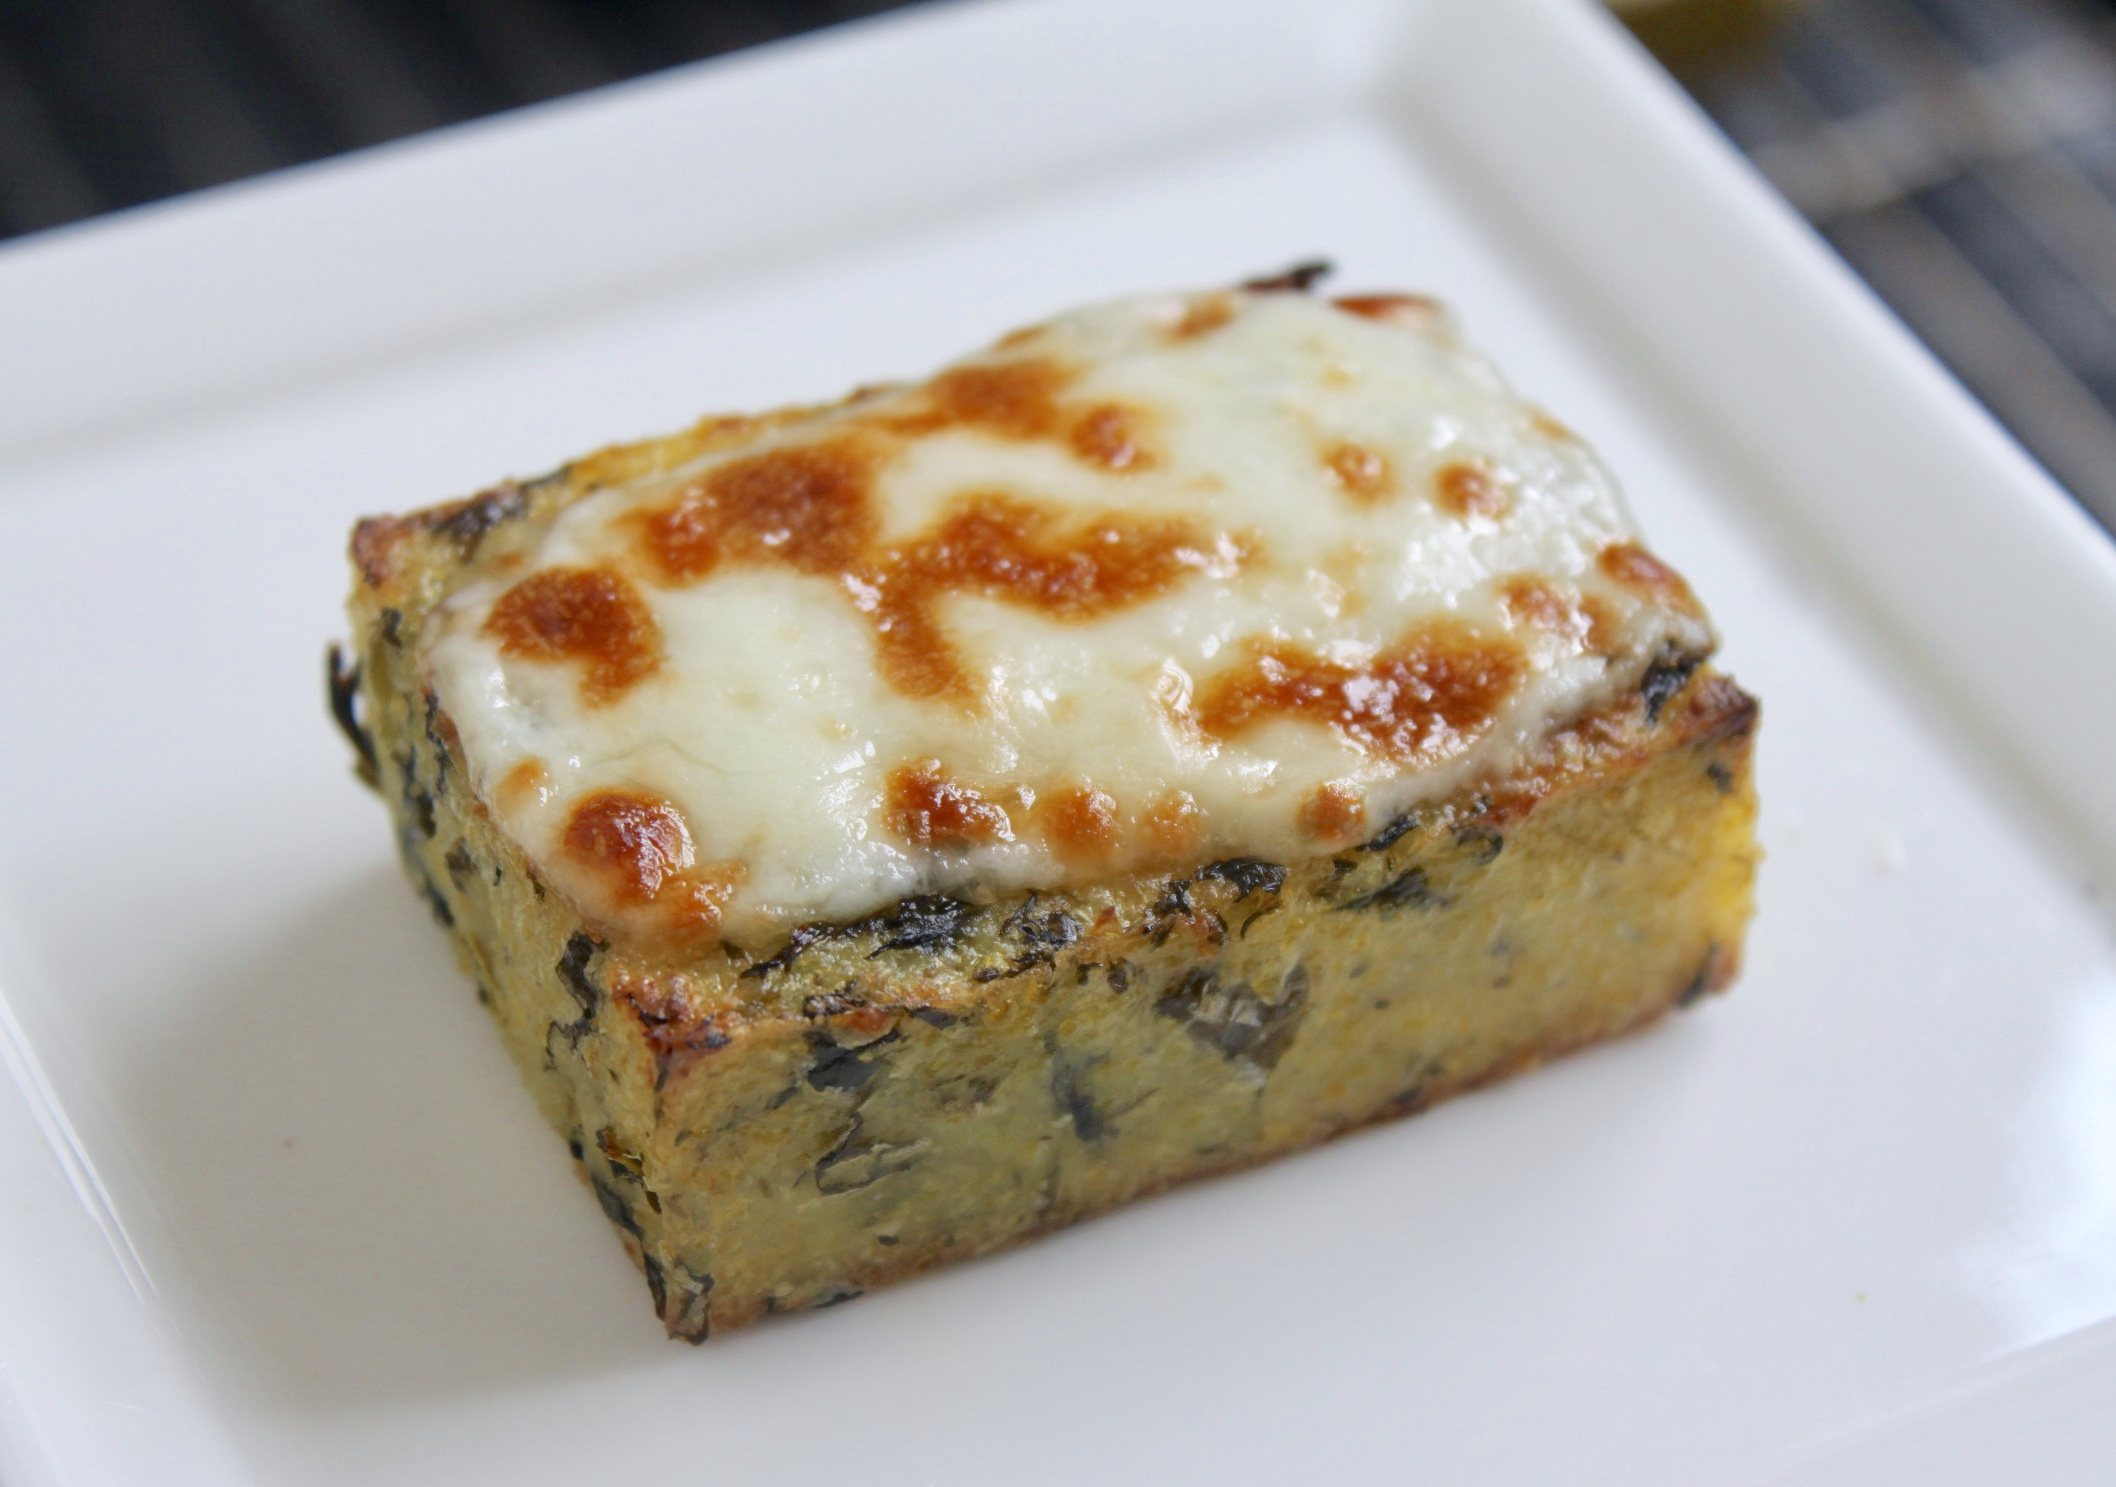 Piece of grilled polenta with cheese